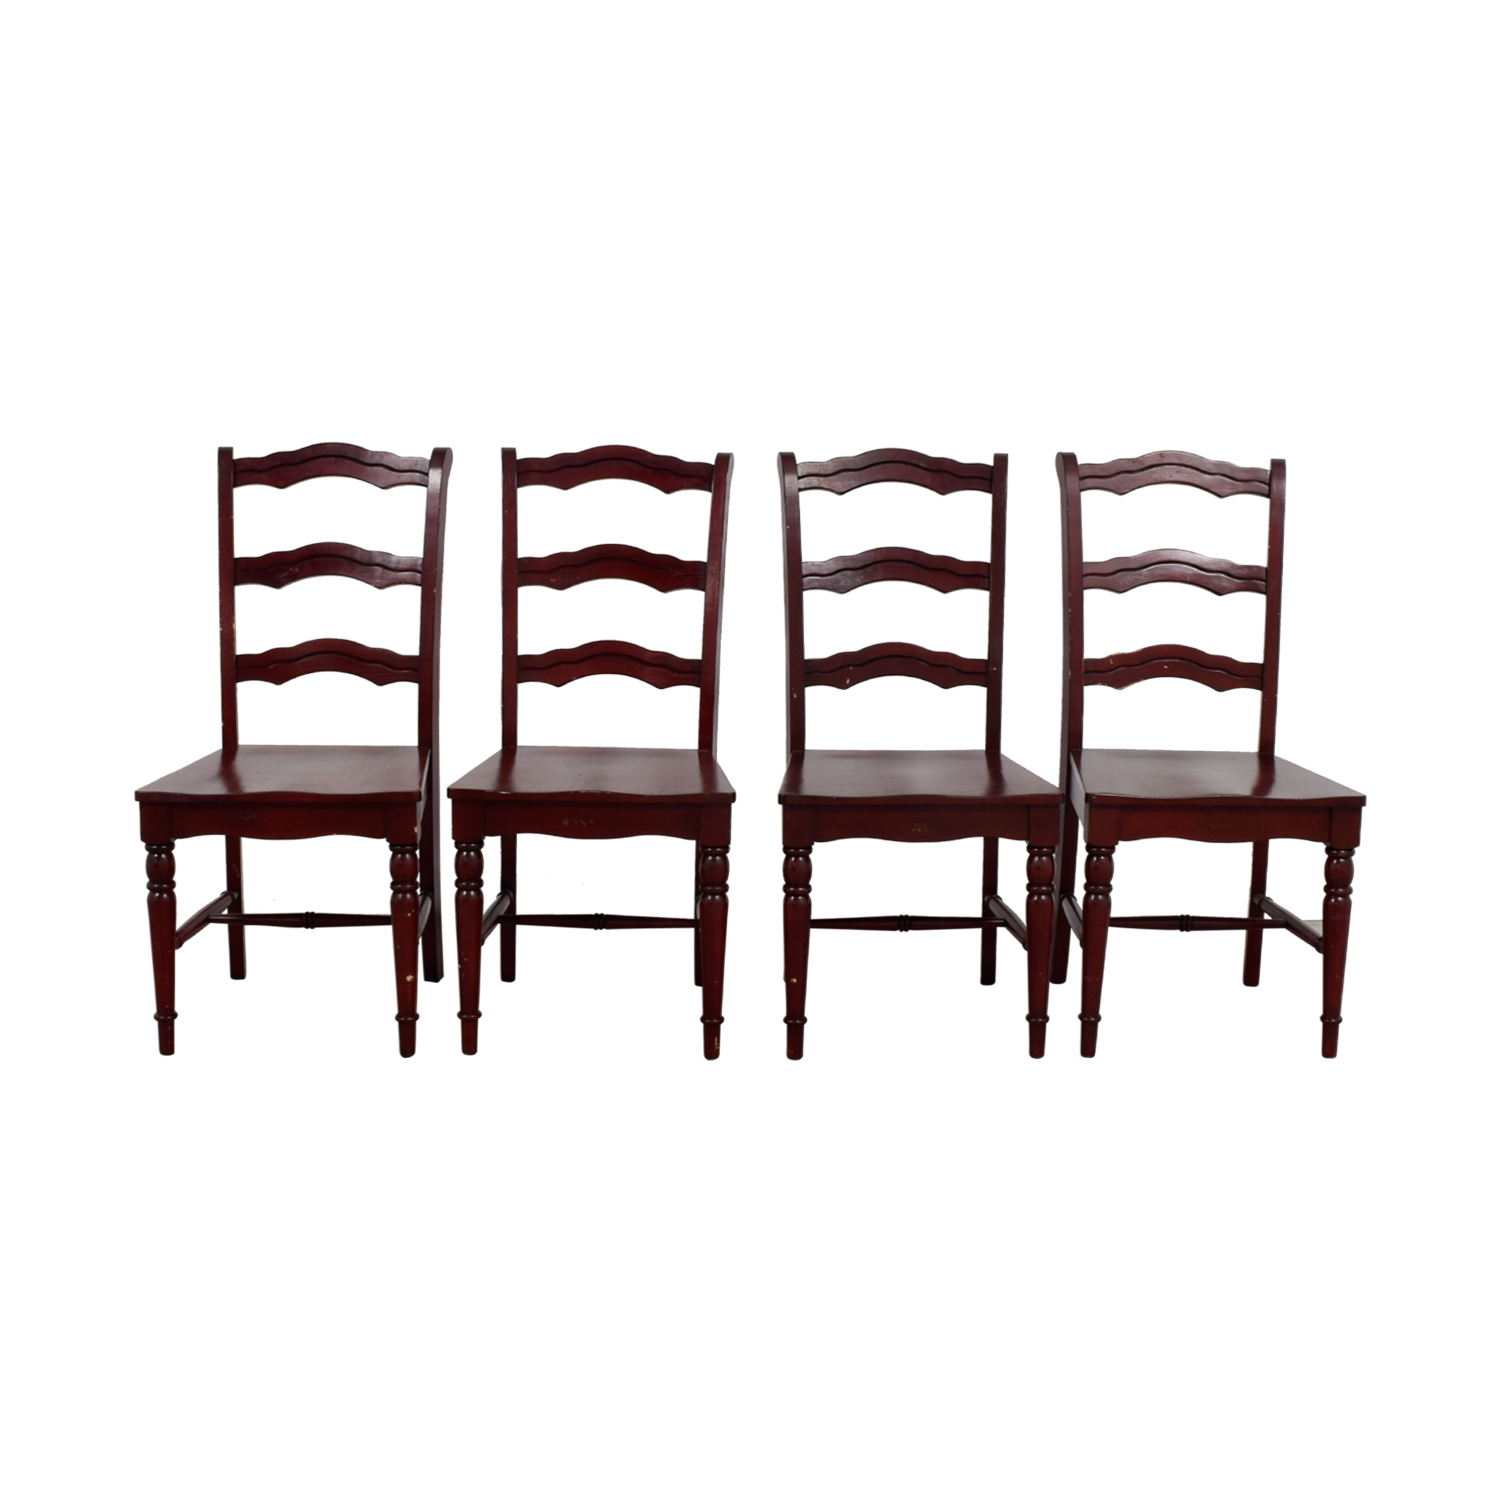 74 Off Pier 1 Pier 1 Imports Wood Chairs Chairs